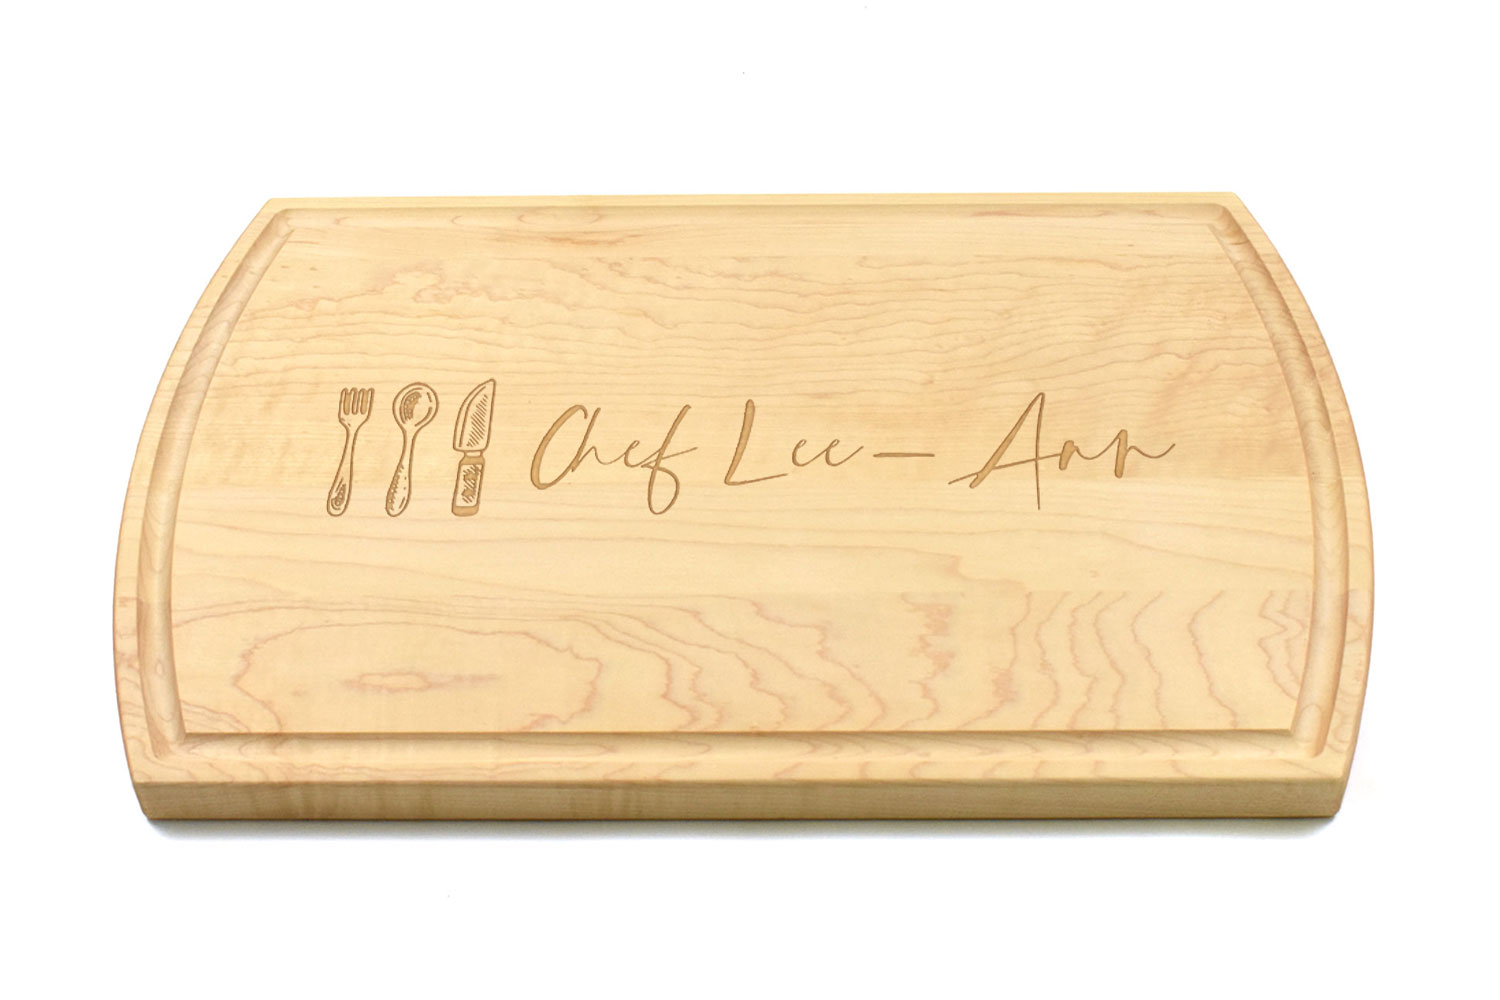 Large Canadian Made Maple Wood Cutting Board, Personalised Engraving